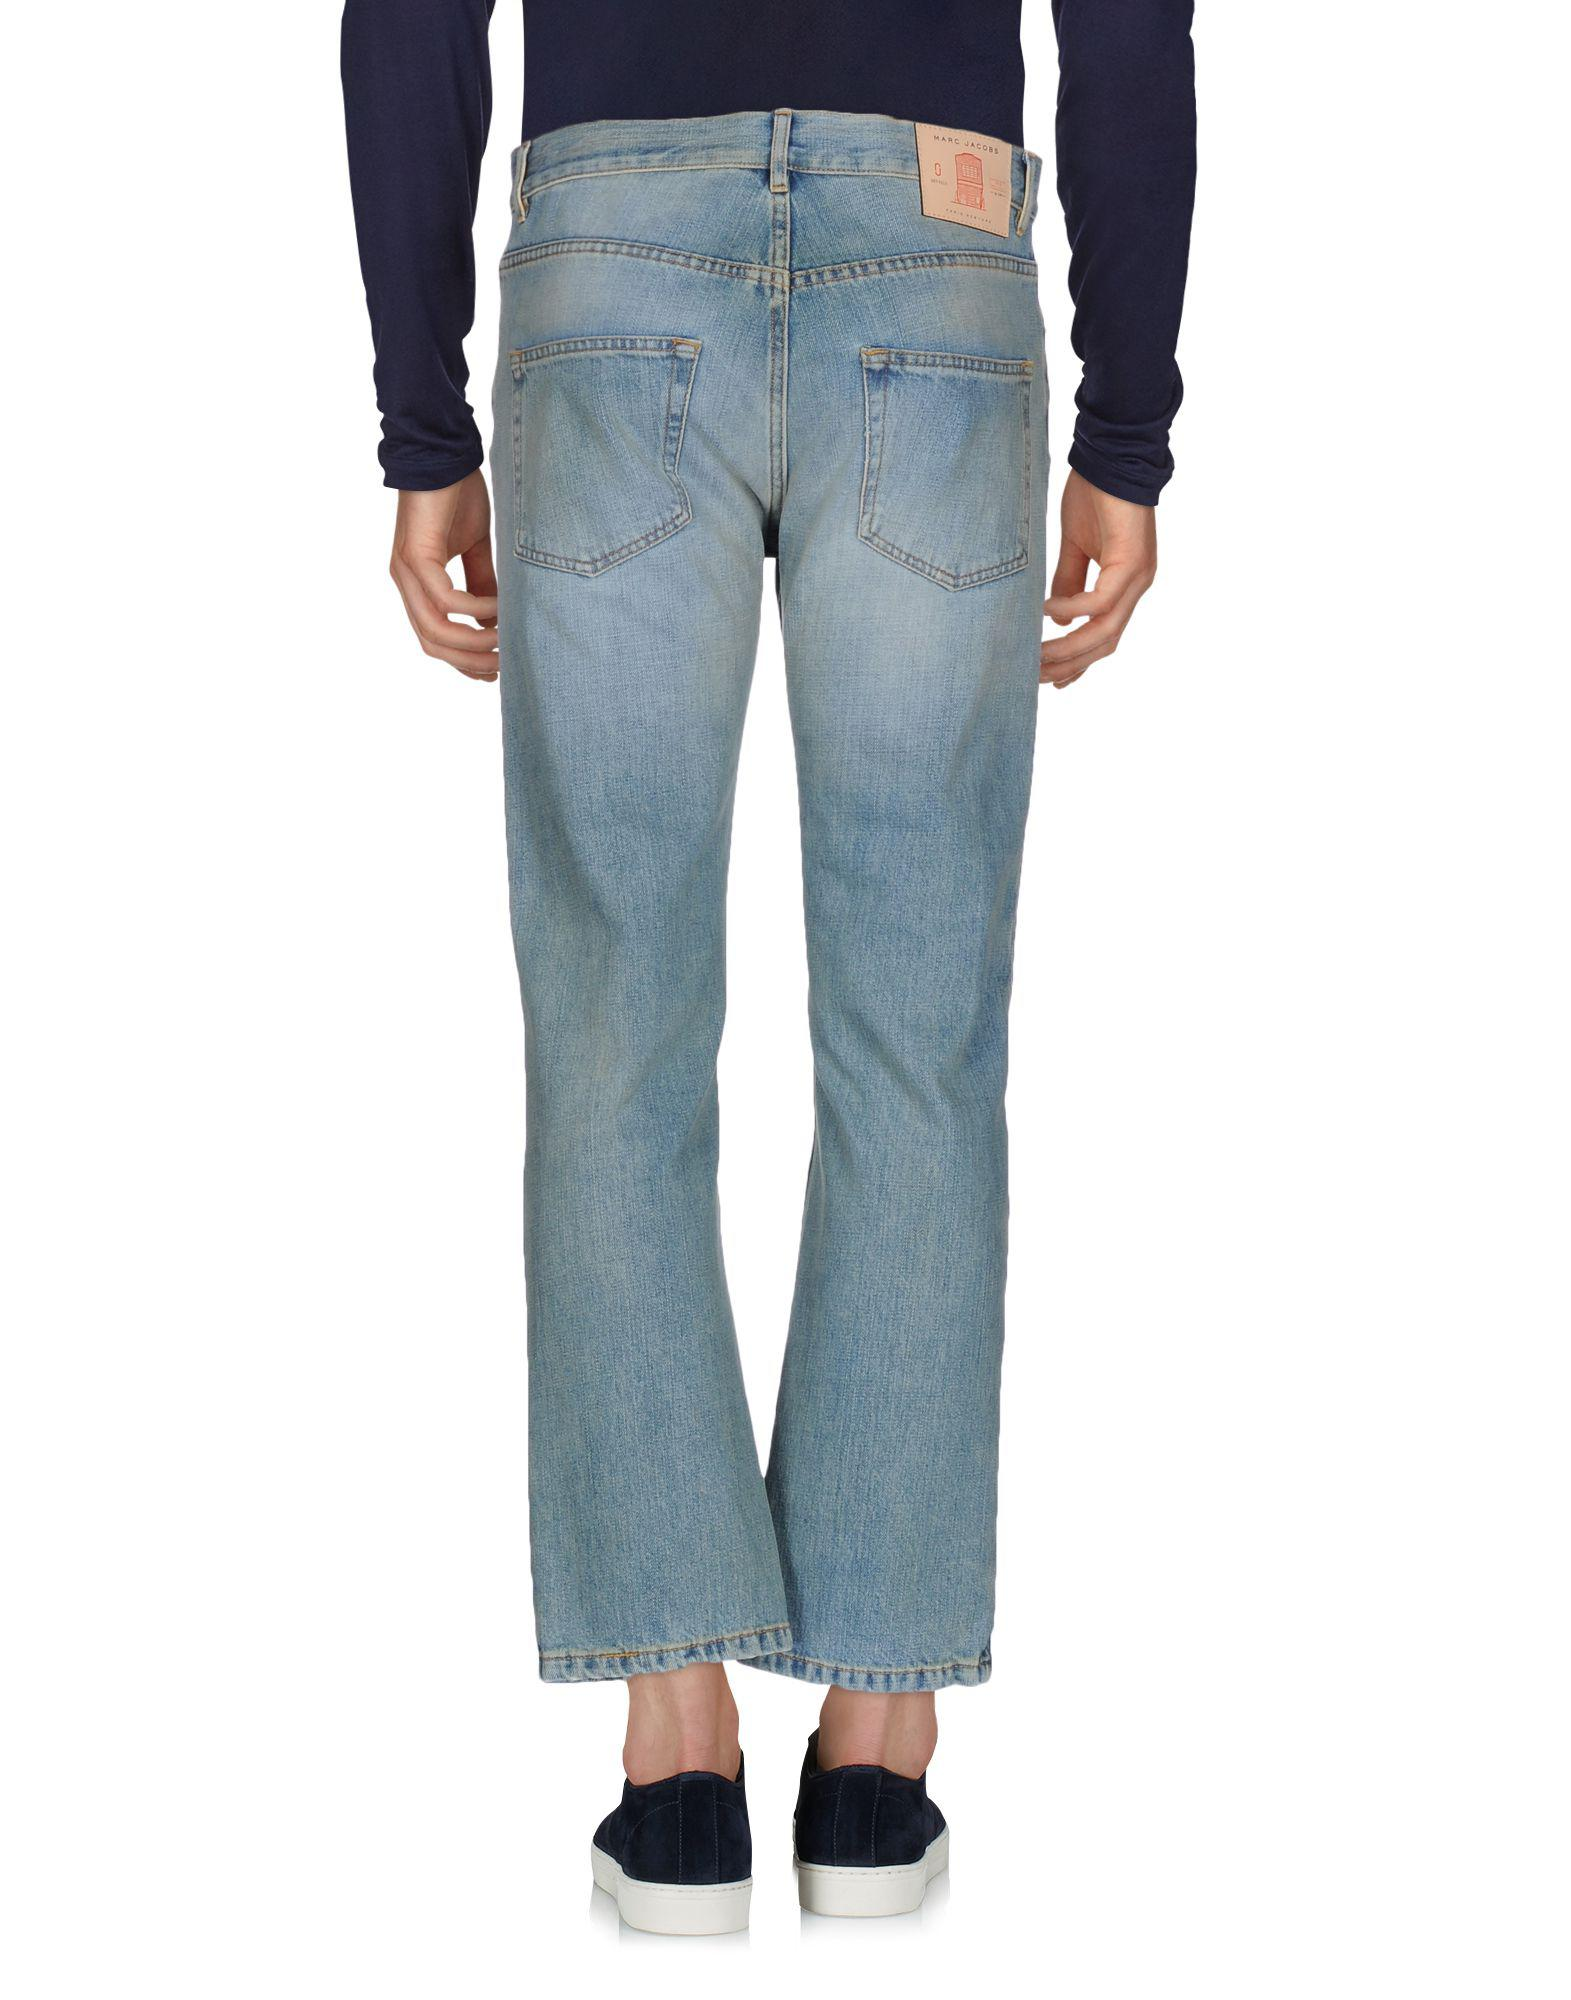 Marc Jacobs Denim Trousers in Blue for Men